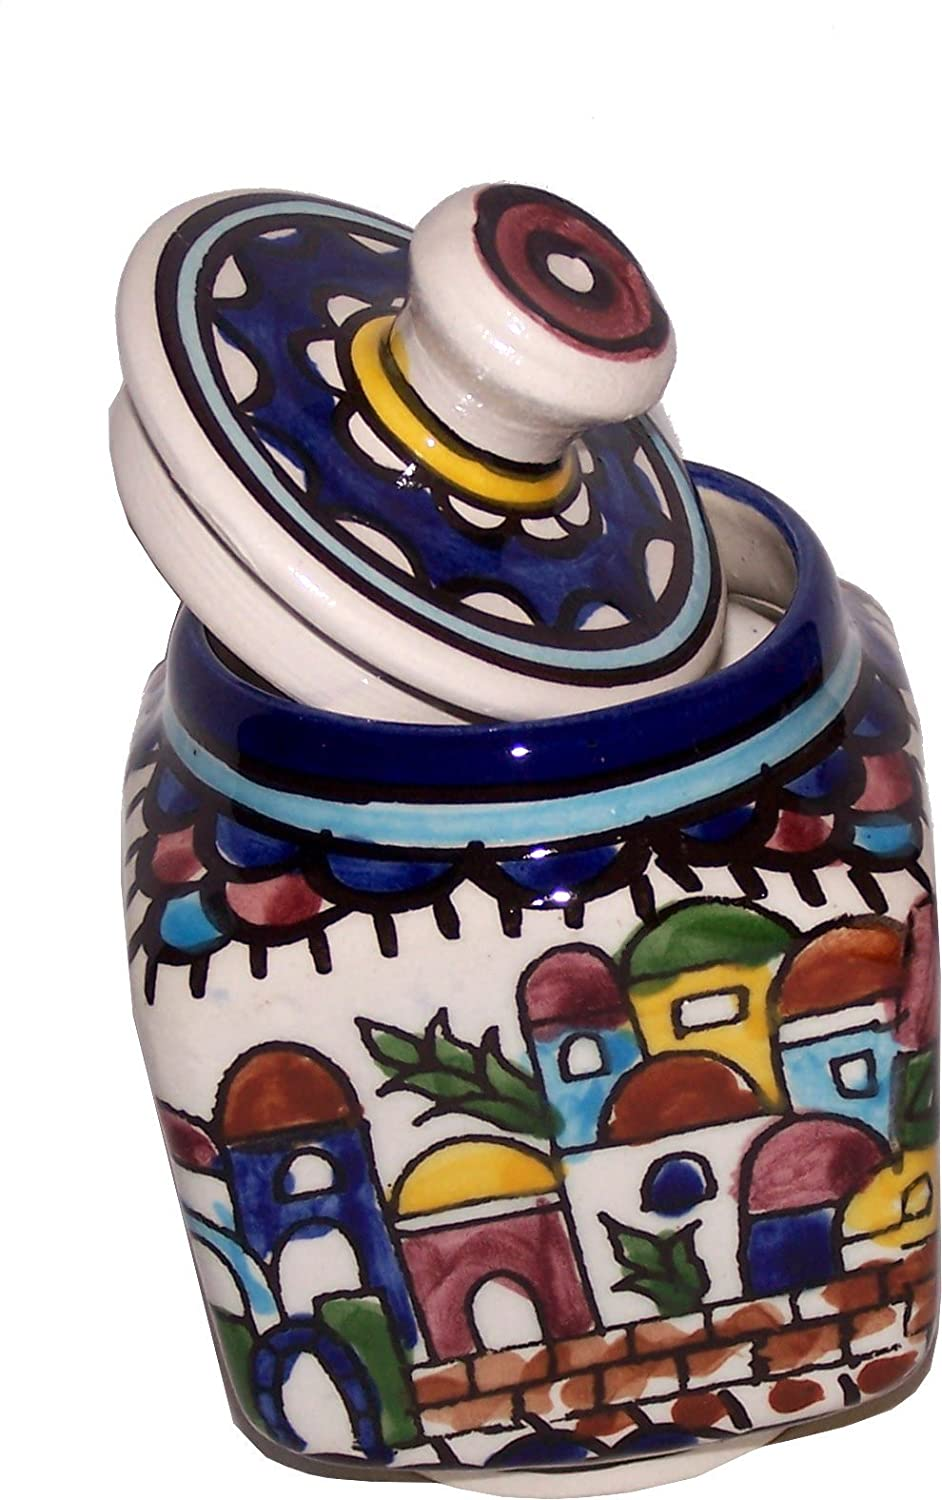 Jerusalem Sugar Pot - Square - Ceramic painted by hand (4 Inches) - Old City Panorama or view - Asfour Outlet Trademark Holy Land Market